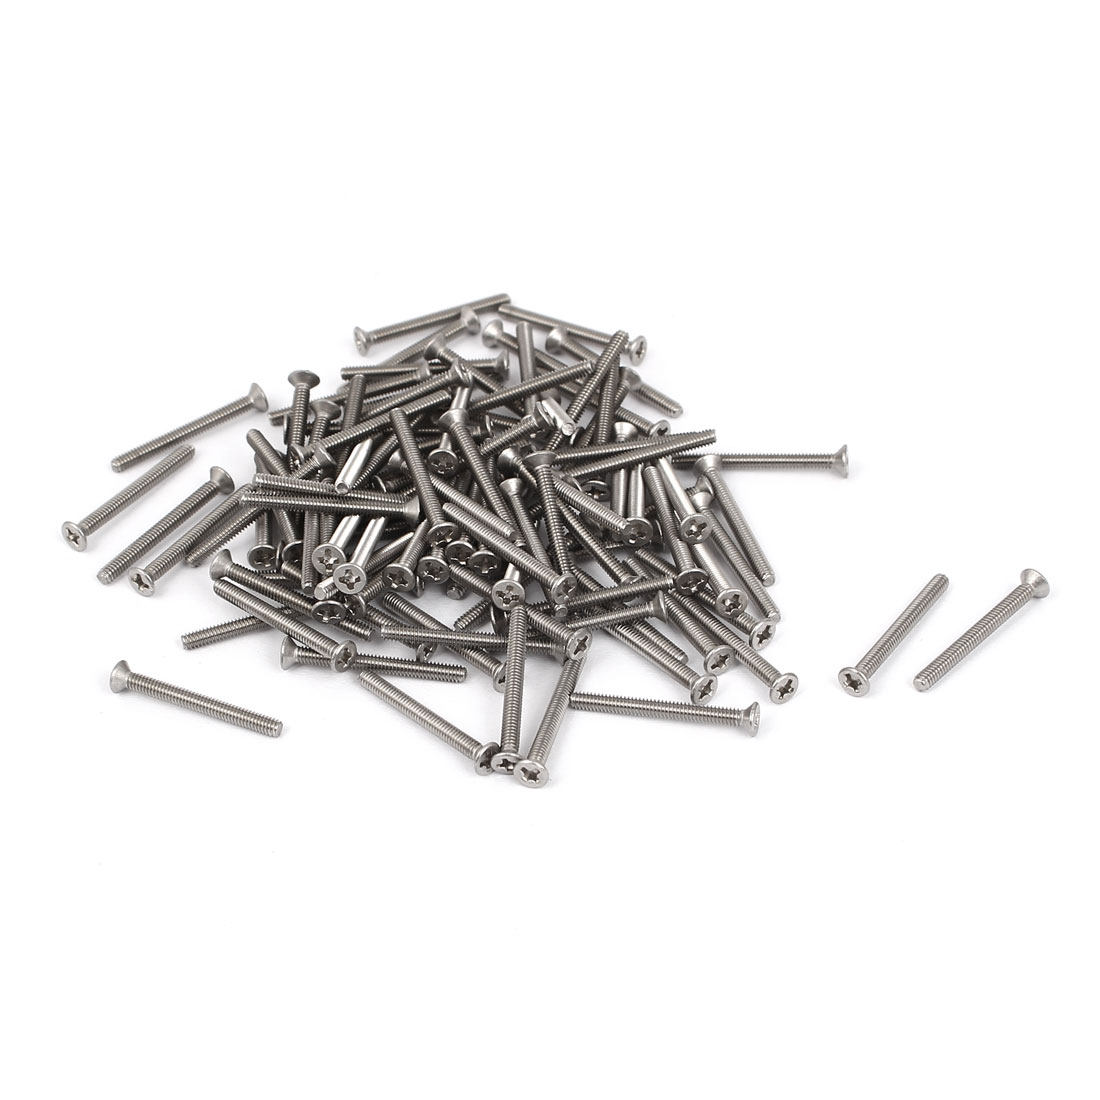 M2x20mm 304 Stainless Steel Phillips Flat Countersunk Head Machine Screws 100pcs